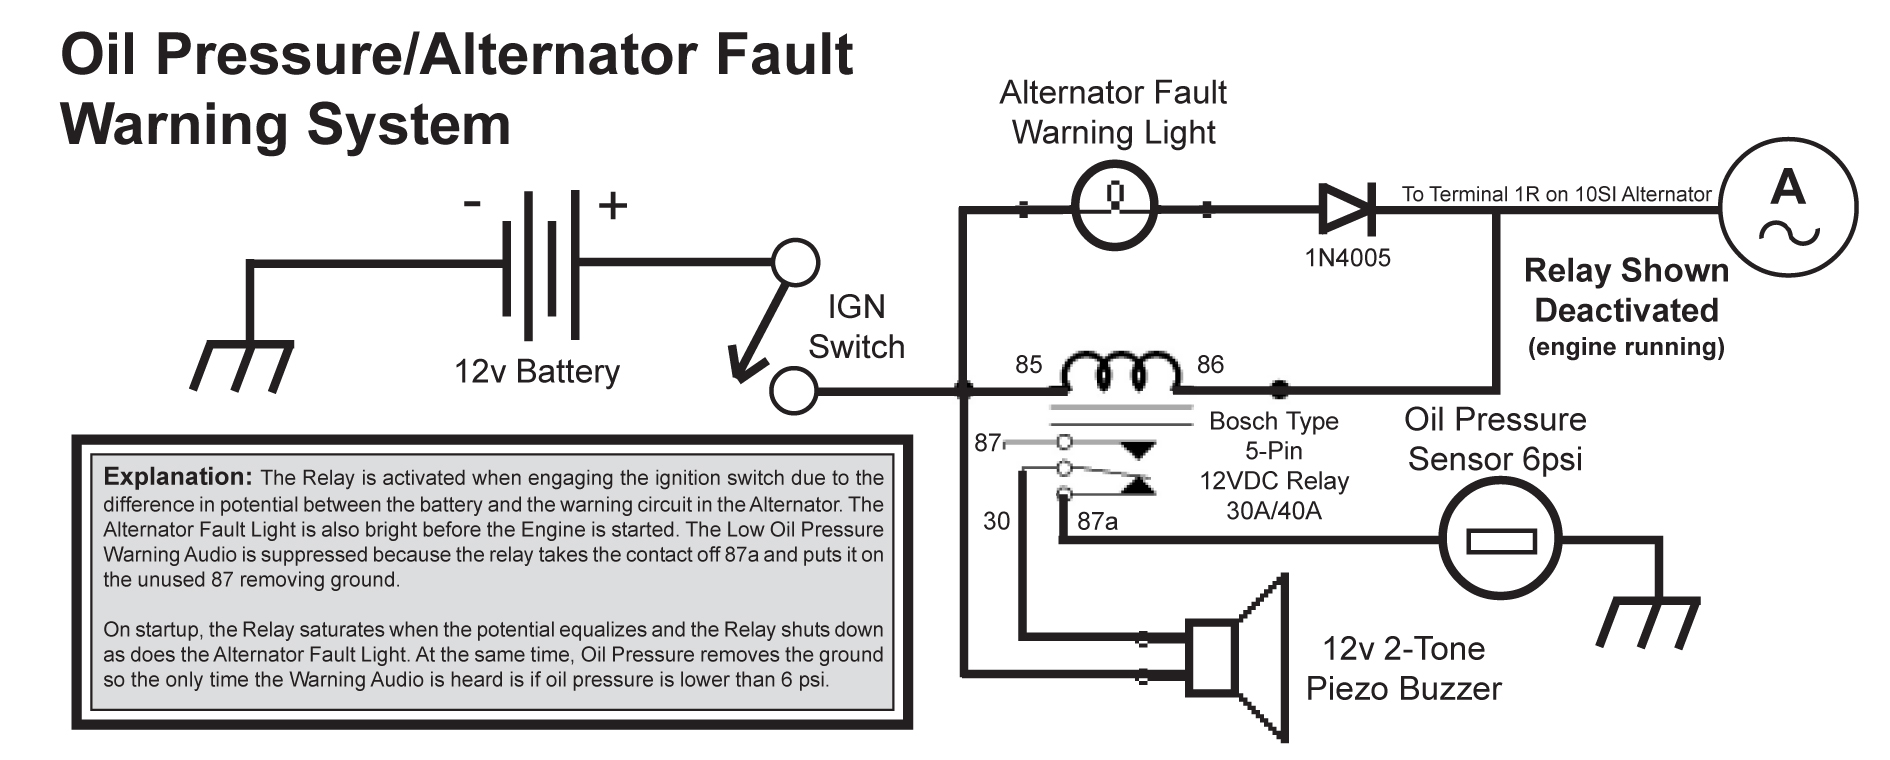 Wiring Oil Pressure Gauge Warning Lights Diagrams Apc Probe Diagram Returnless Fuel Injection Free Engine 2012 Chevy Sensor Electric Install